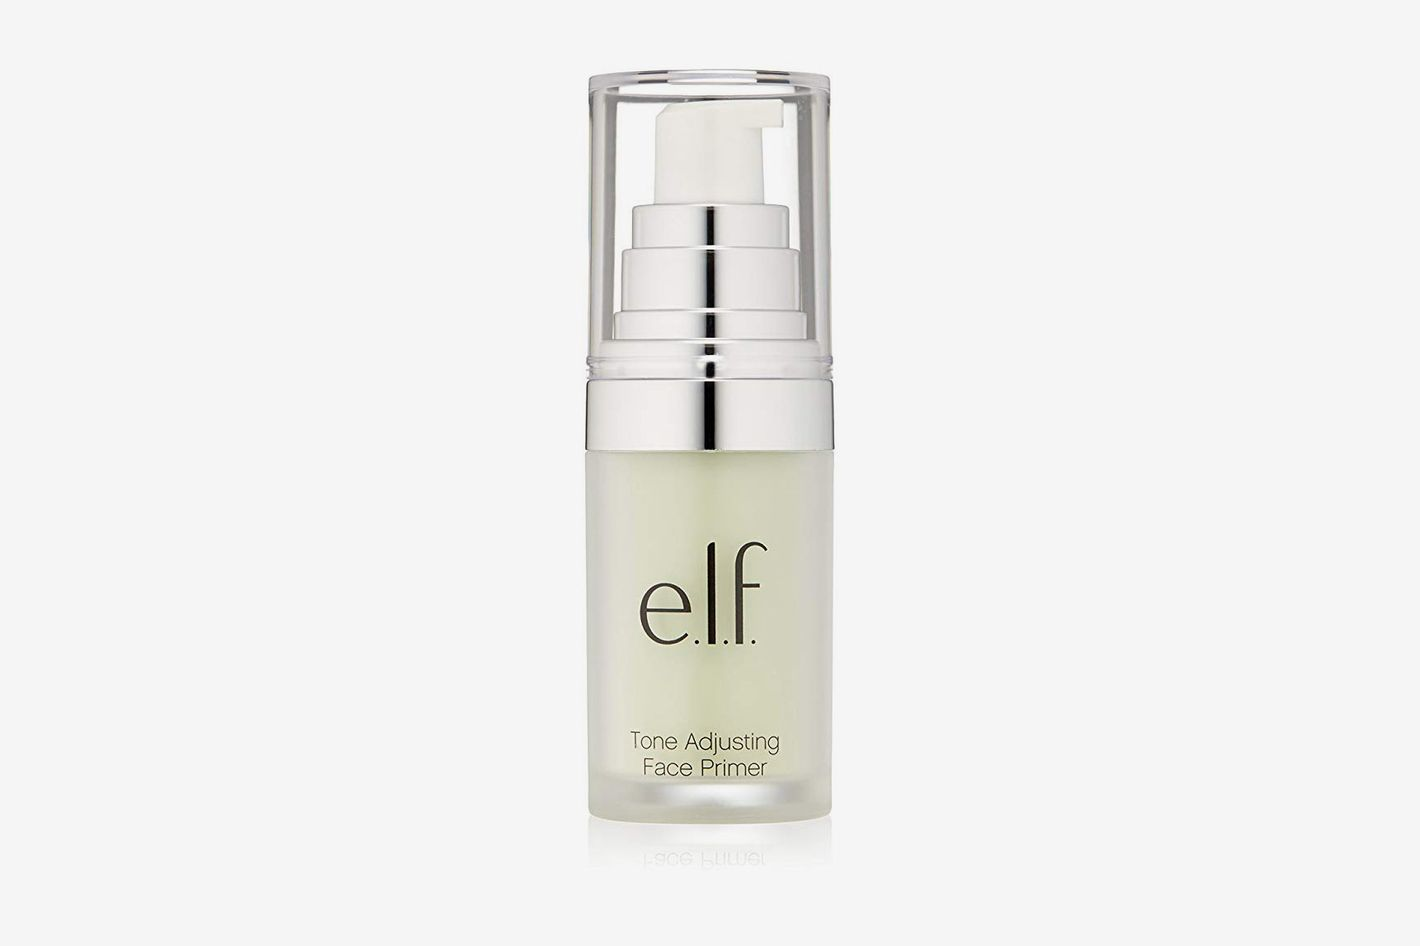 E.l.f. Mineral-Infused Face Primer